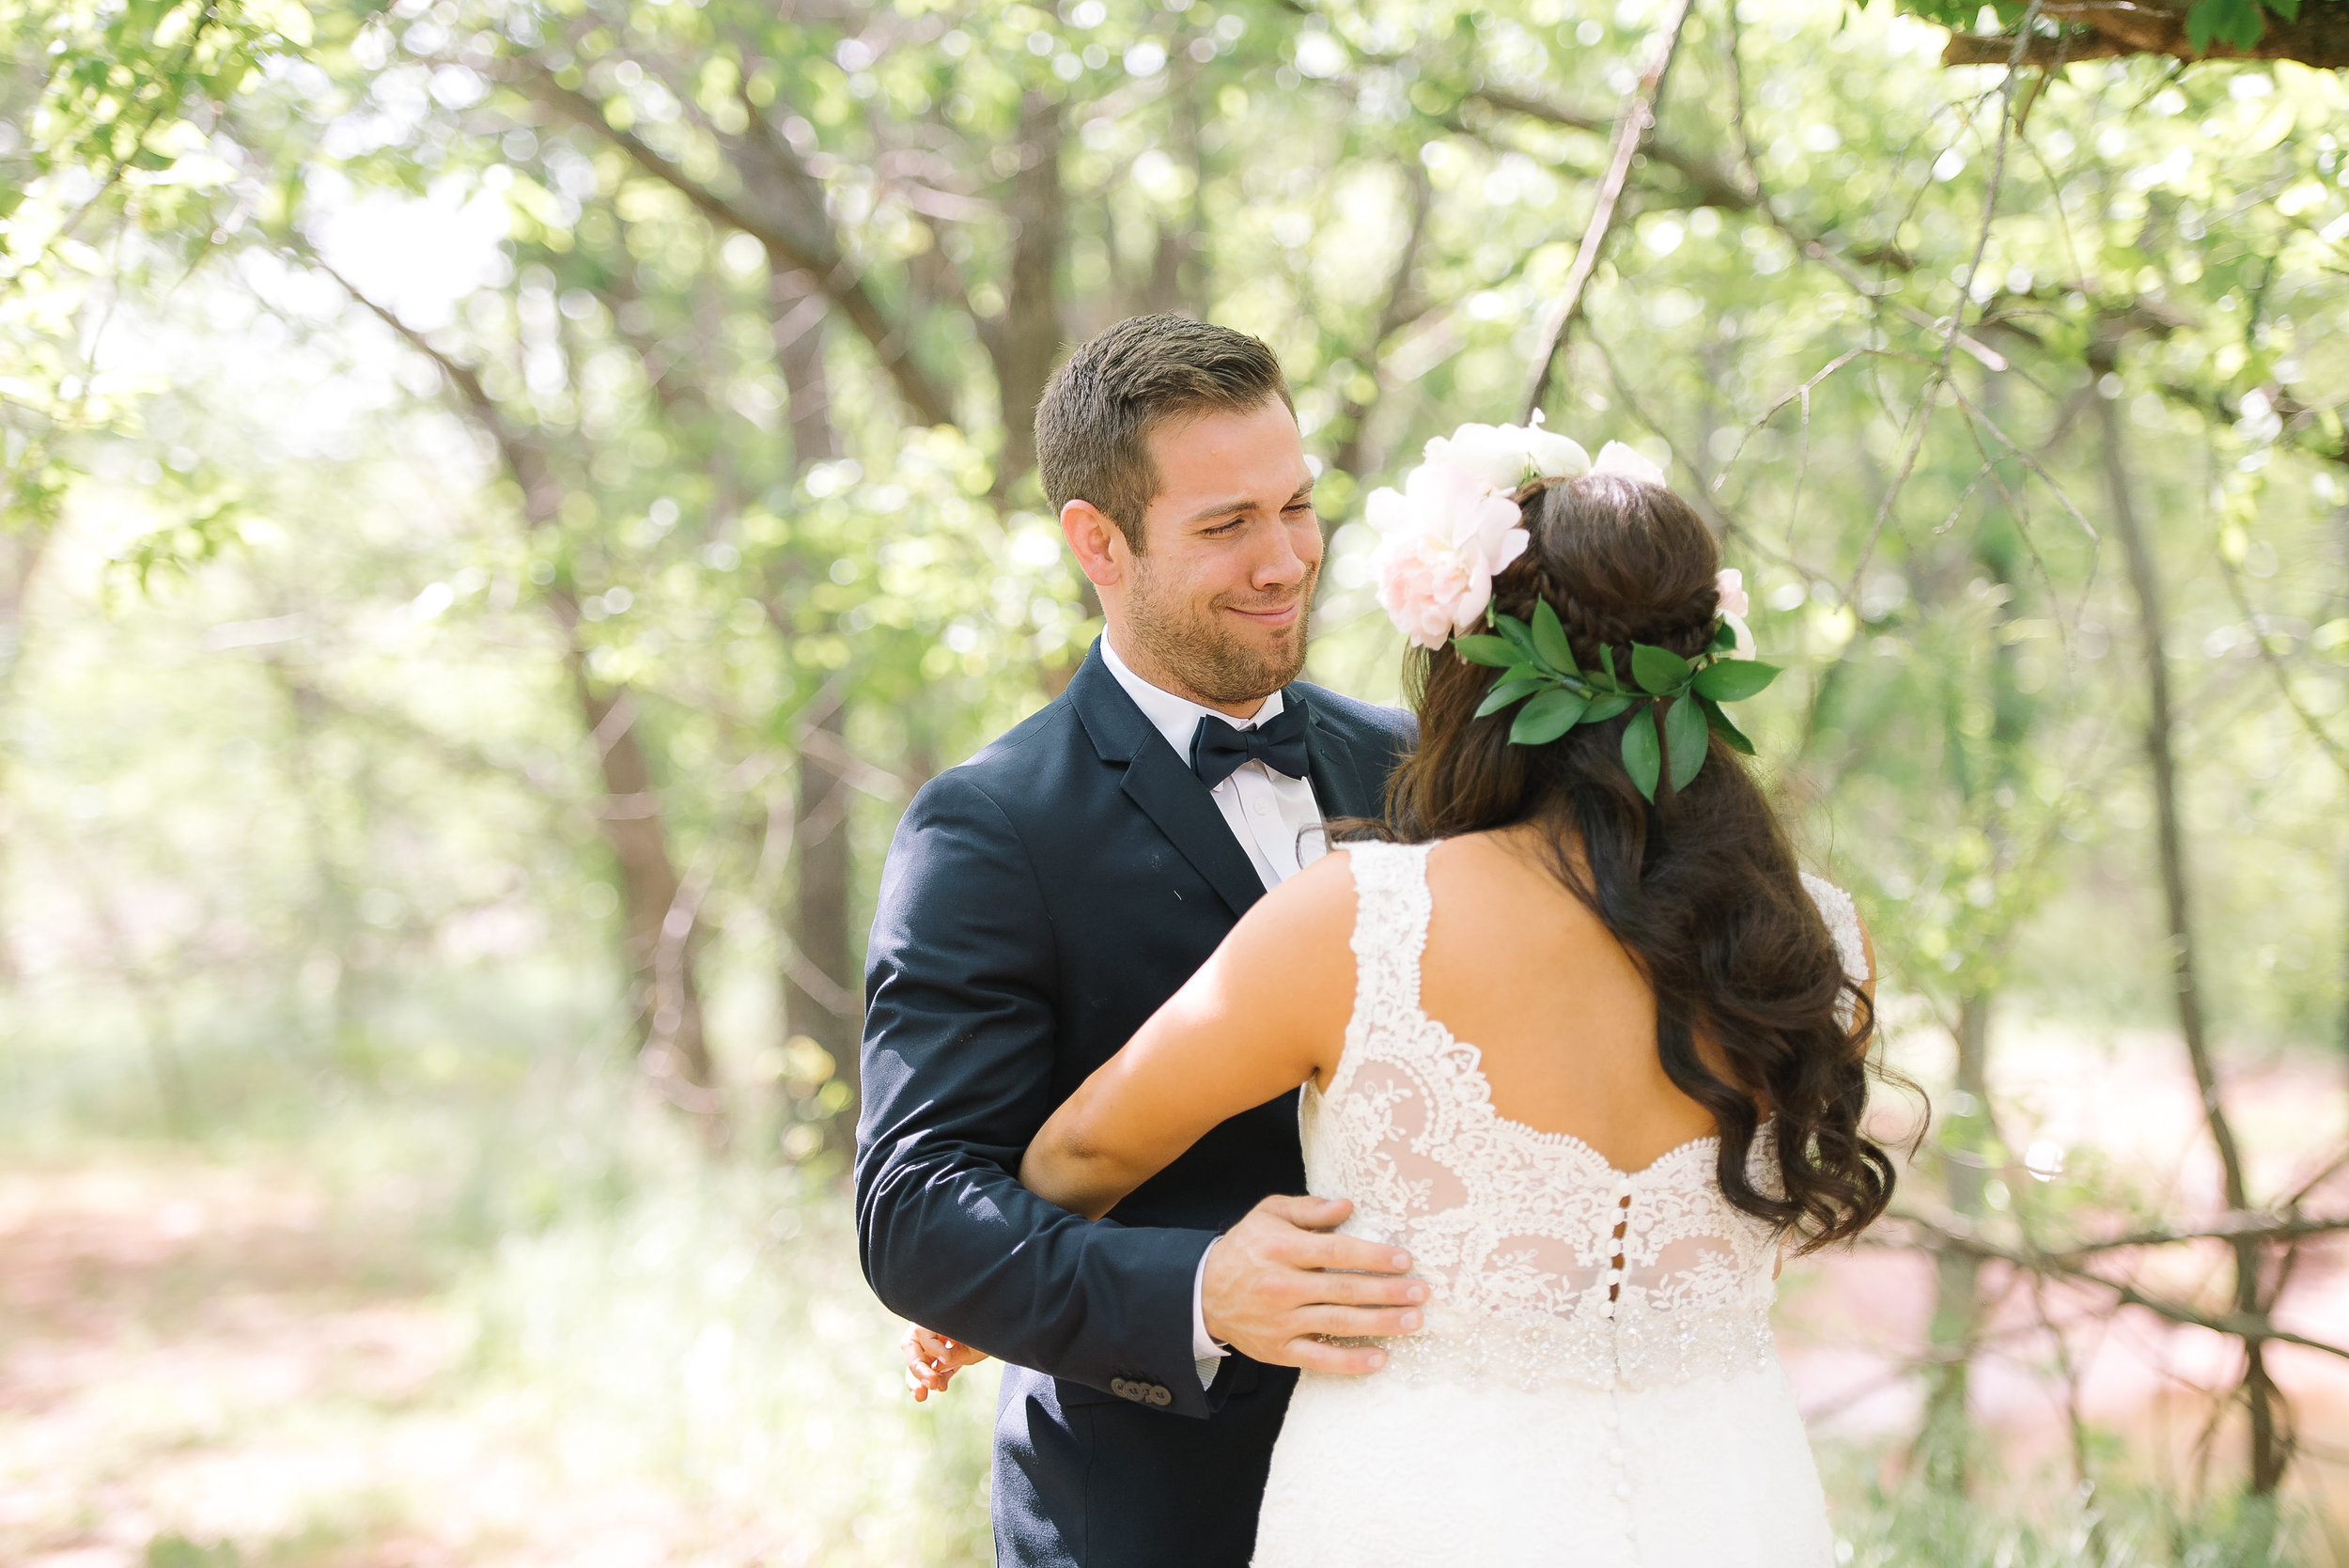 """Following a little """"hidden"""" path which opened up into a """"breathtakingly beautiful,wooded area""""Lucy and Dillon took their romantic first look pictures!"""